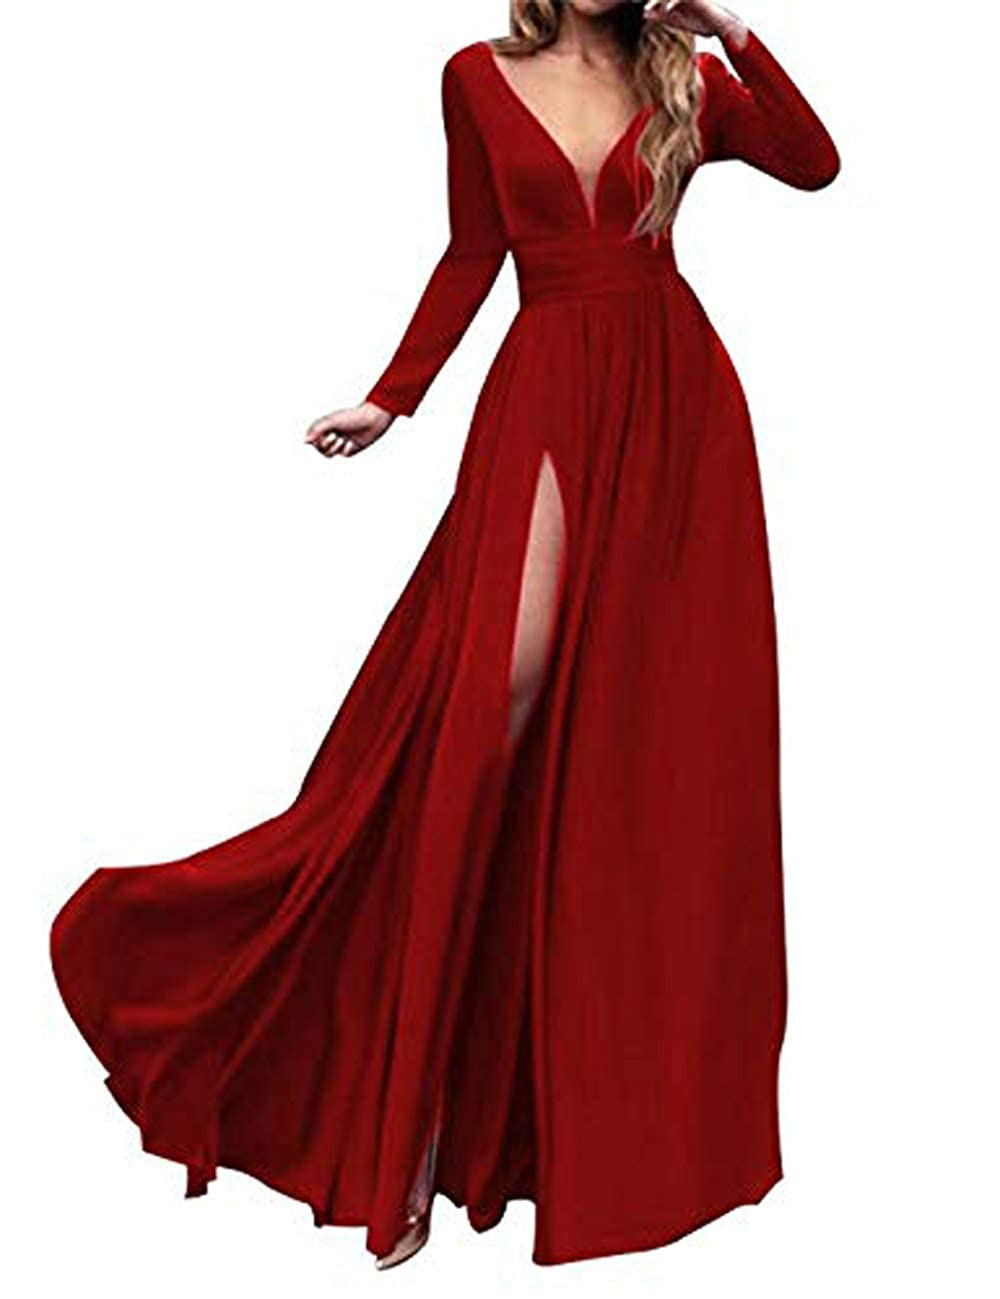 3style Red MariRobe Women's High Split Evening Dress Deep V Neck Prom Gown Long Sleeve Party Gown